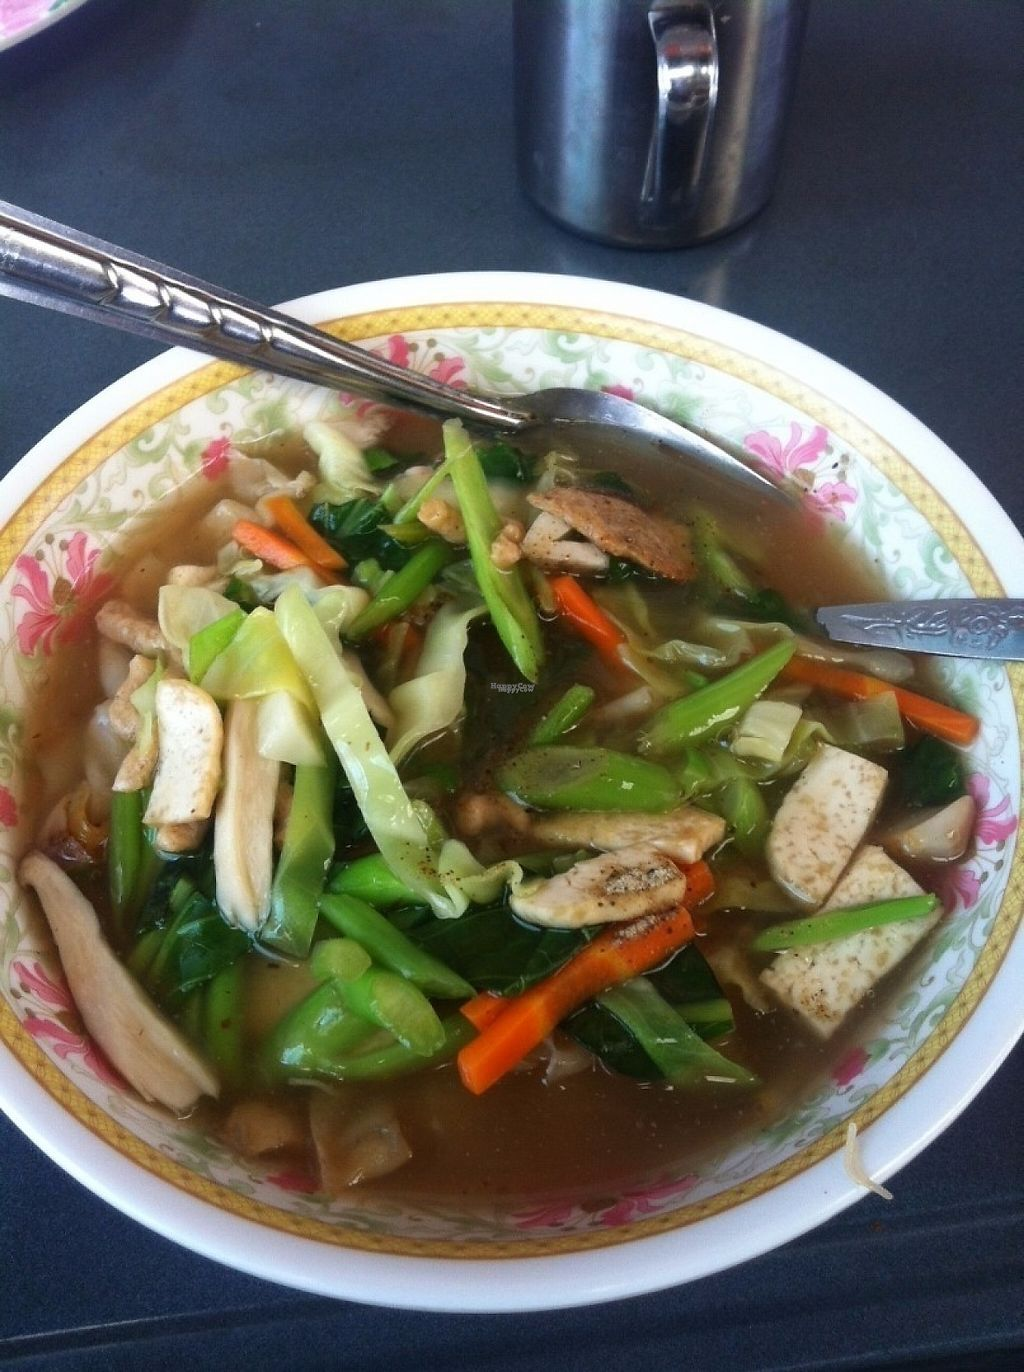 """Photo of Lee Jae Veg  by <a href=""""/members/profile/Cyclinggal"""">Cyclinggal</a> <br/>Yummy soup for 30 Baths <br/> March 4, 2017  - <a href='/contact/abuse/image/38192/232424'>Report</a>"""